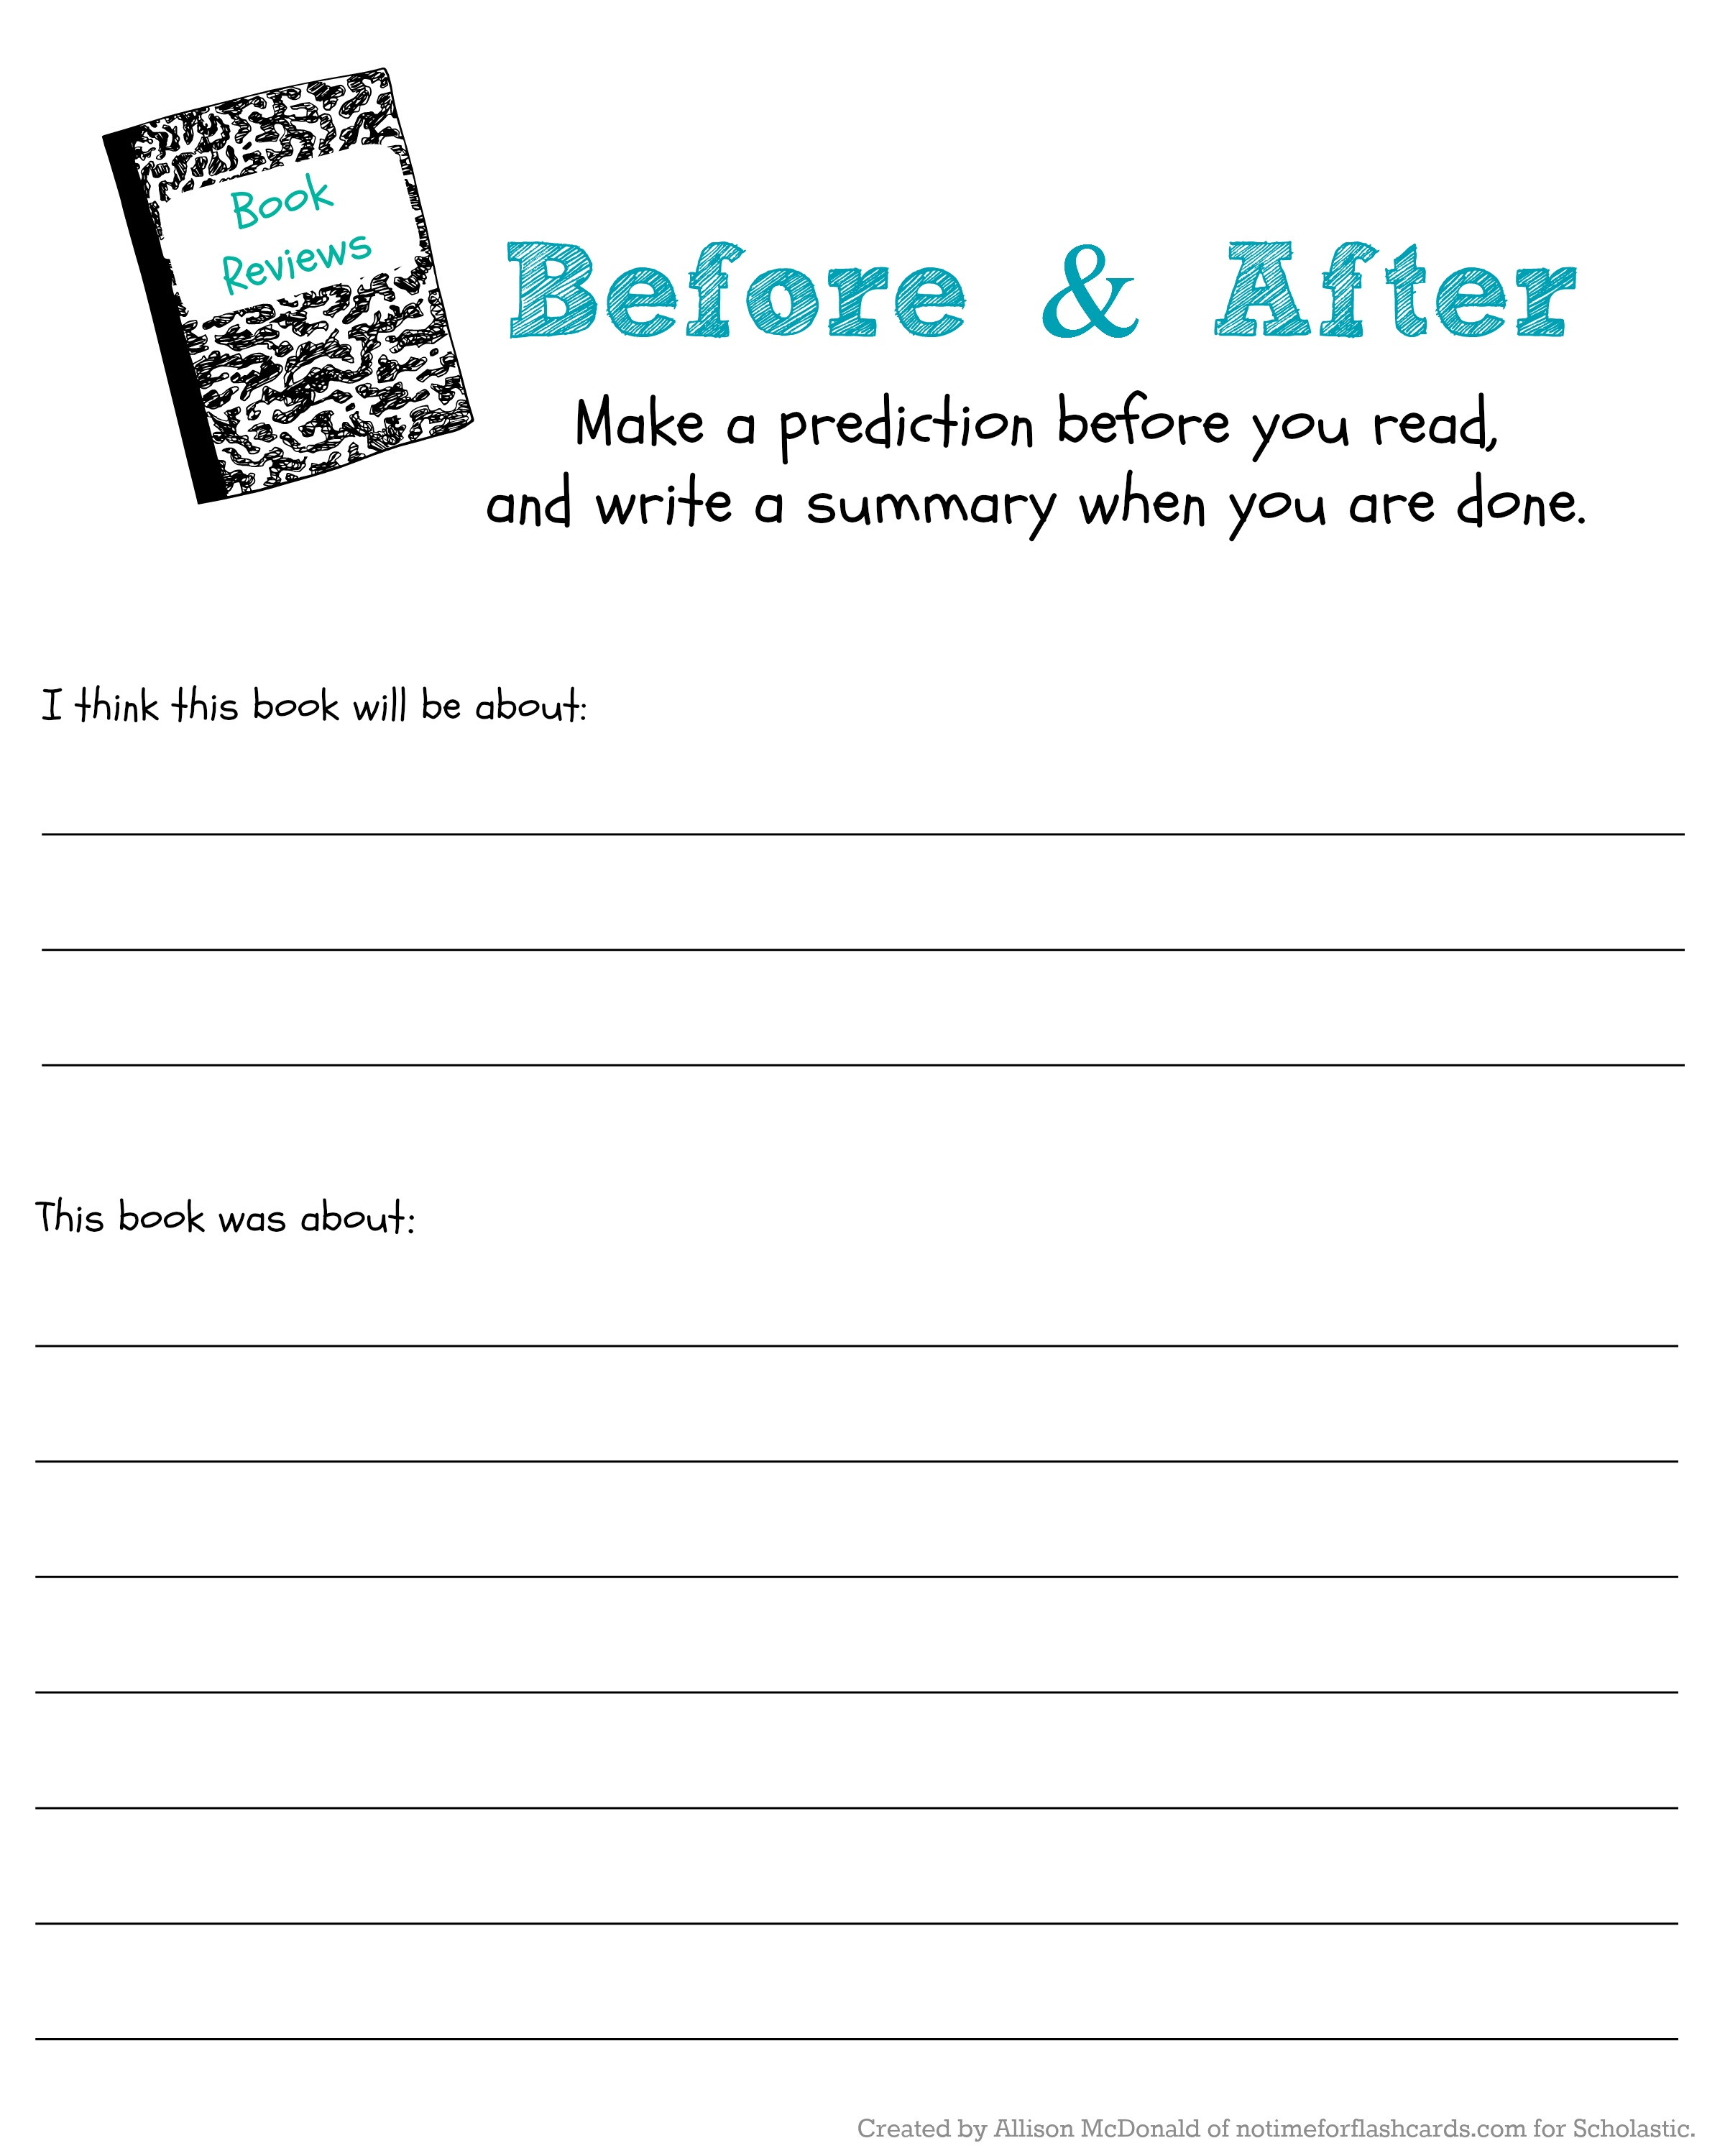 Prediction Worksheets 2nd Grade Judge A Book by Its Cover to Predict & Read